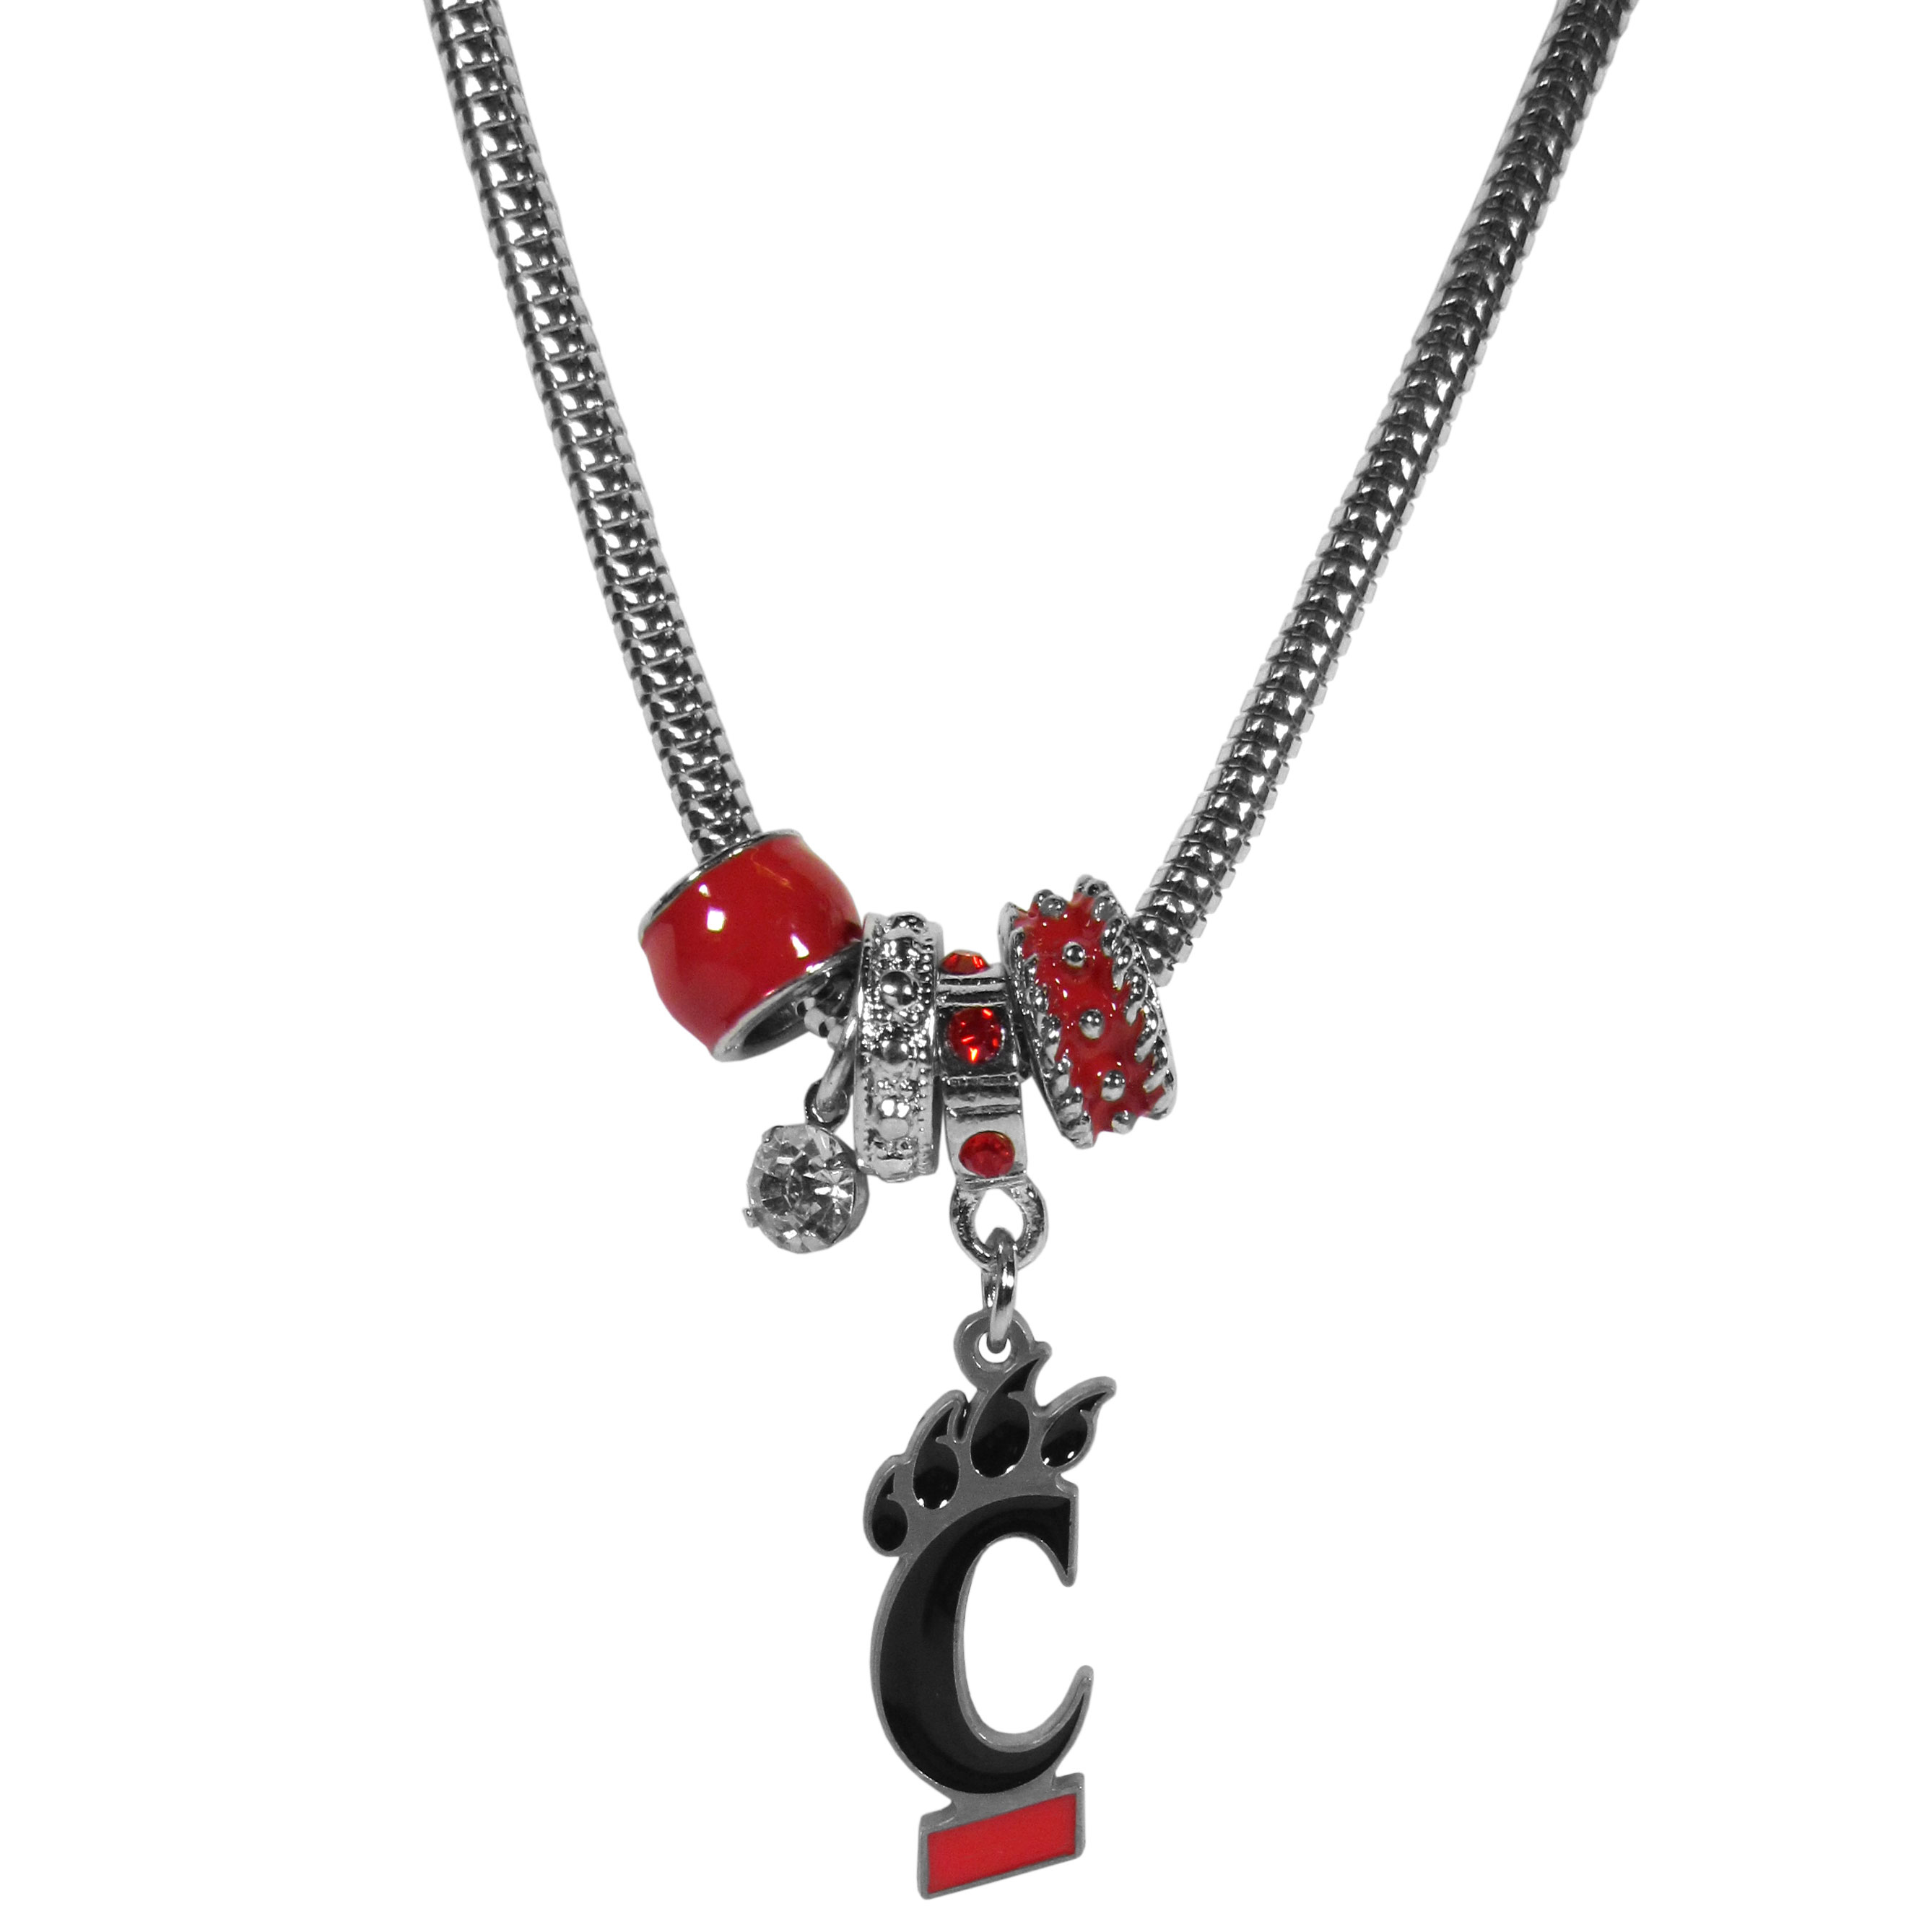 Cincinnati Bearcats Euro Bead Necklace - We have combined the wildly popular Euro style beads with your favorite team to create our Cincinnati Bearcats bead necklace. The 18 inch snake chain features 4 Euro beads with enameled team colors and rhinestone accents with a high polish, nickel free charm and rhinestone charm. Perfect way to show off your team pride.